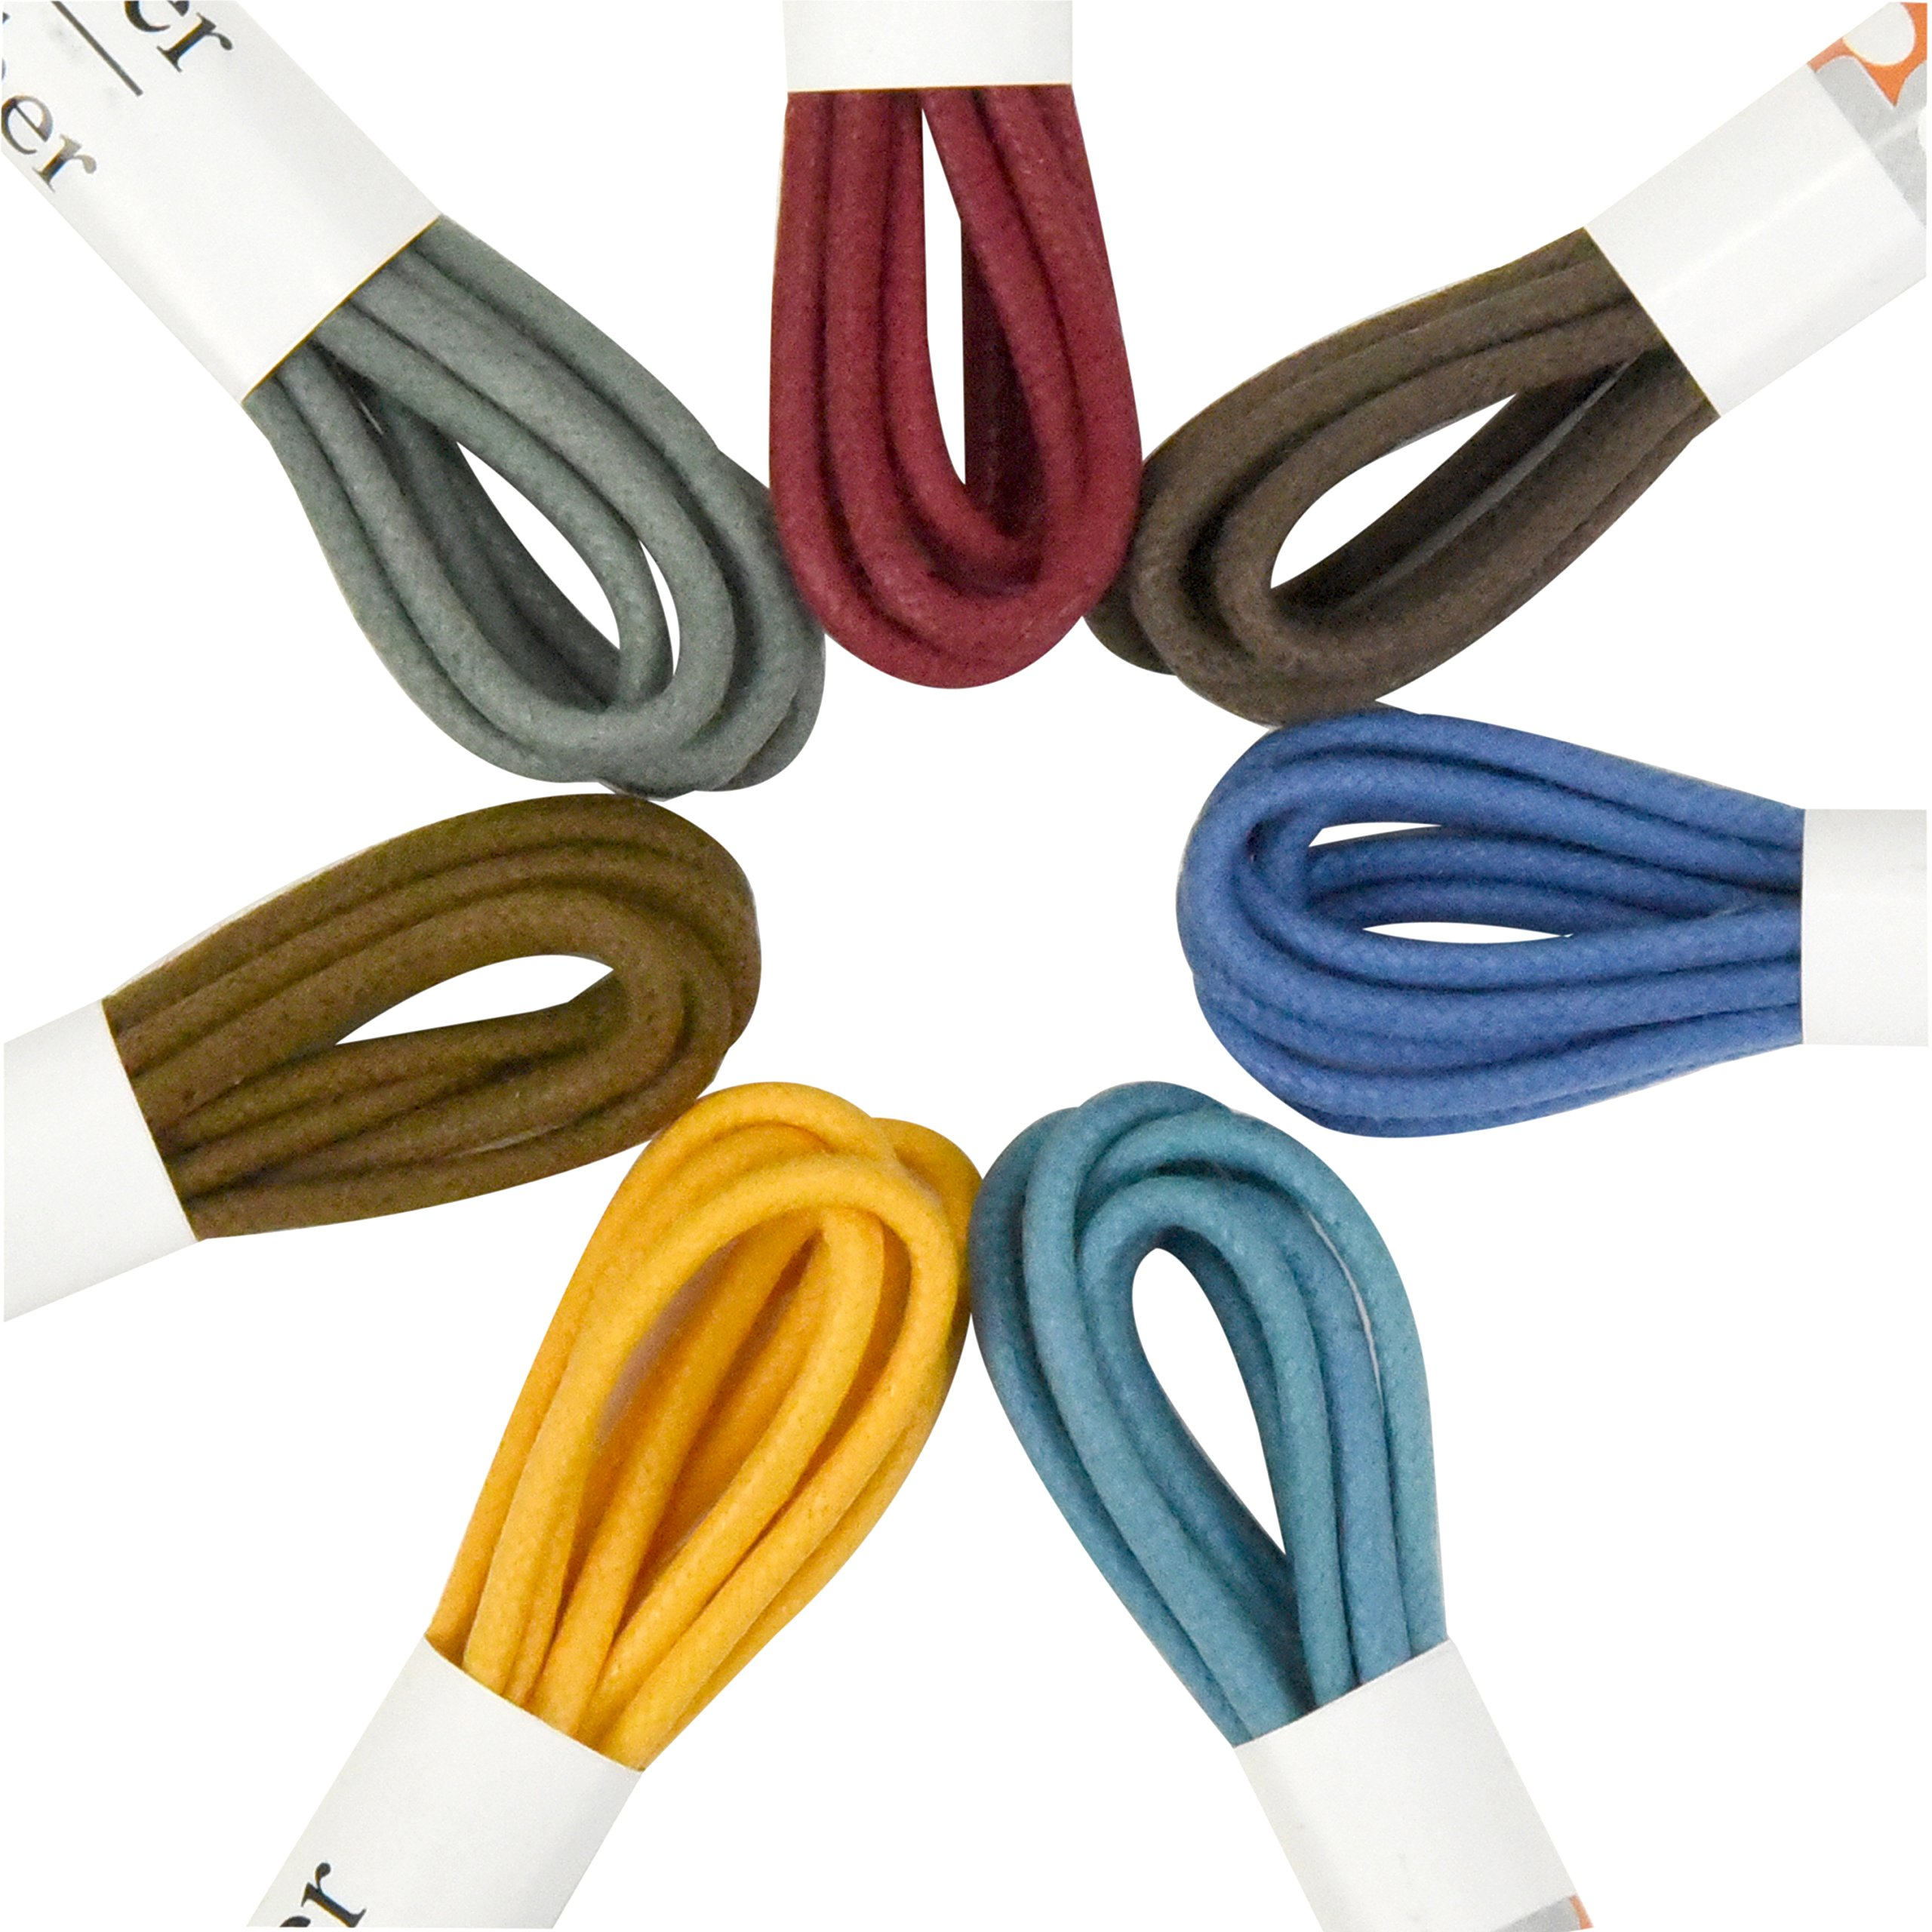 Brother Brother Colored Oxford Shoe Laces for Men (7 Pairs) | 100% Cotton Round and Waxed Shoelaces for Dress Shoes | Gift Box with Brown, Silky Violet, Burgundy, Mustard, Blue, Light Blue, Chocolate by brother brother (Image #4)